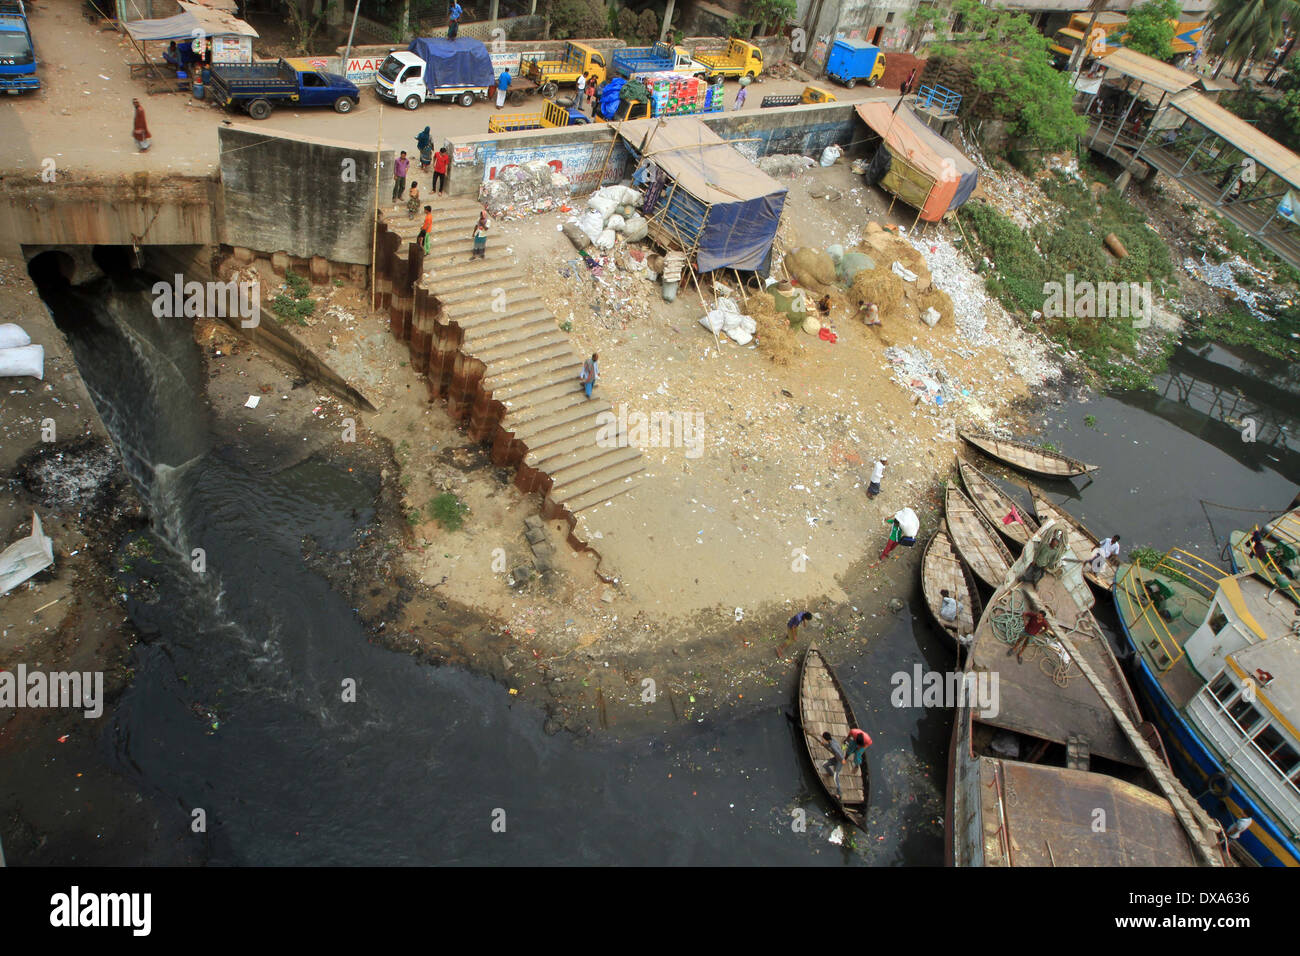 Dhaka 2014. The Buriganga River in Dhaka. Each year the river becomes stagnant from toxic waste from city industries. - Stock Image